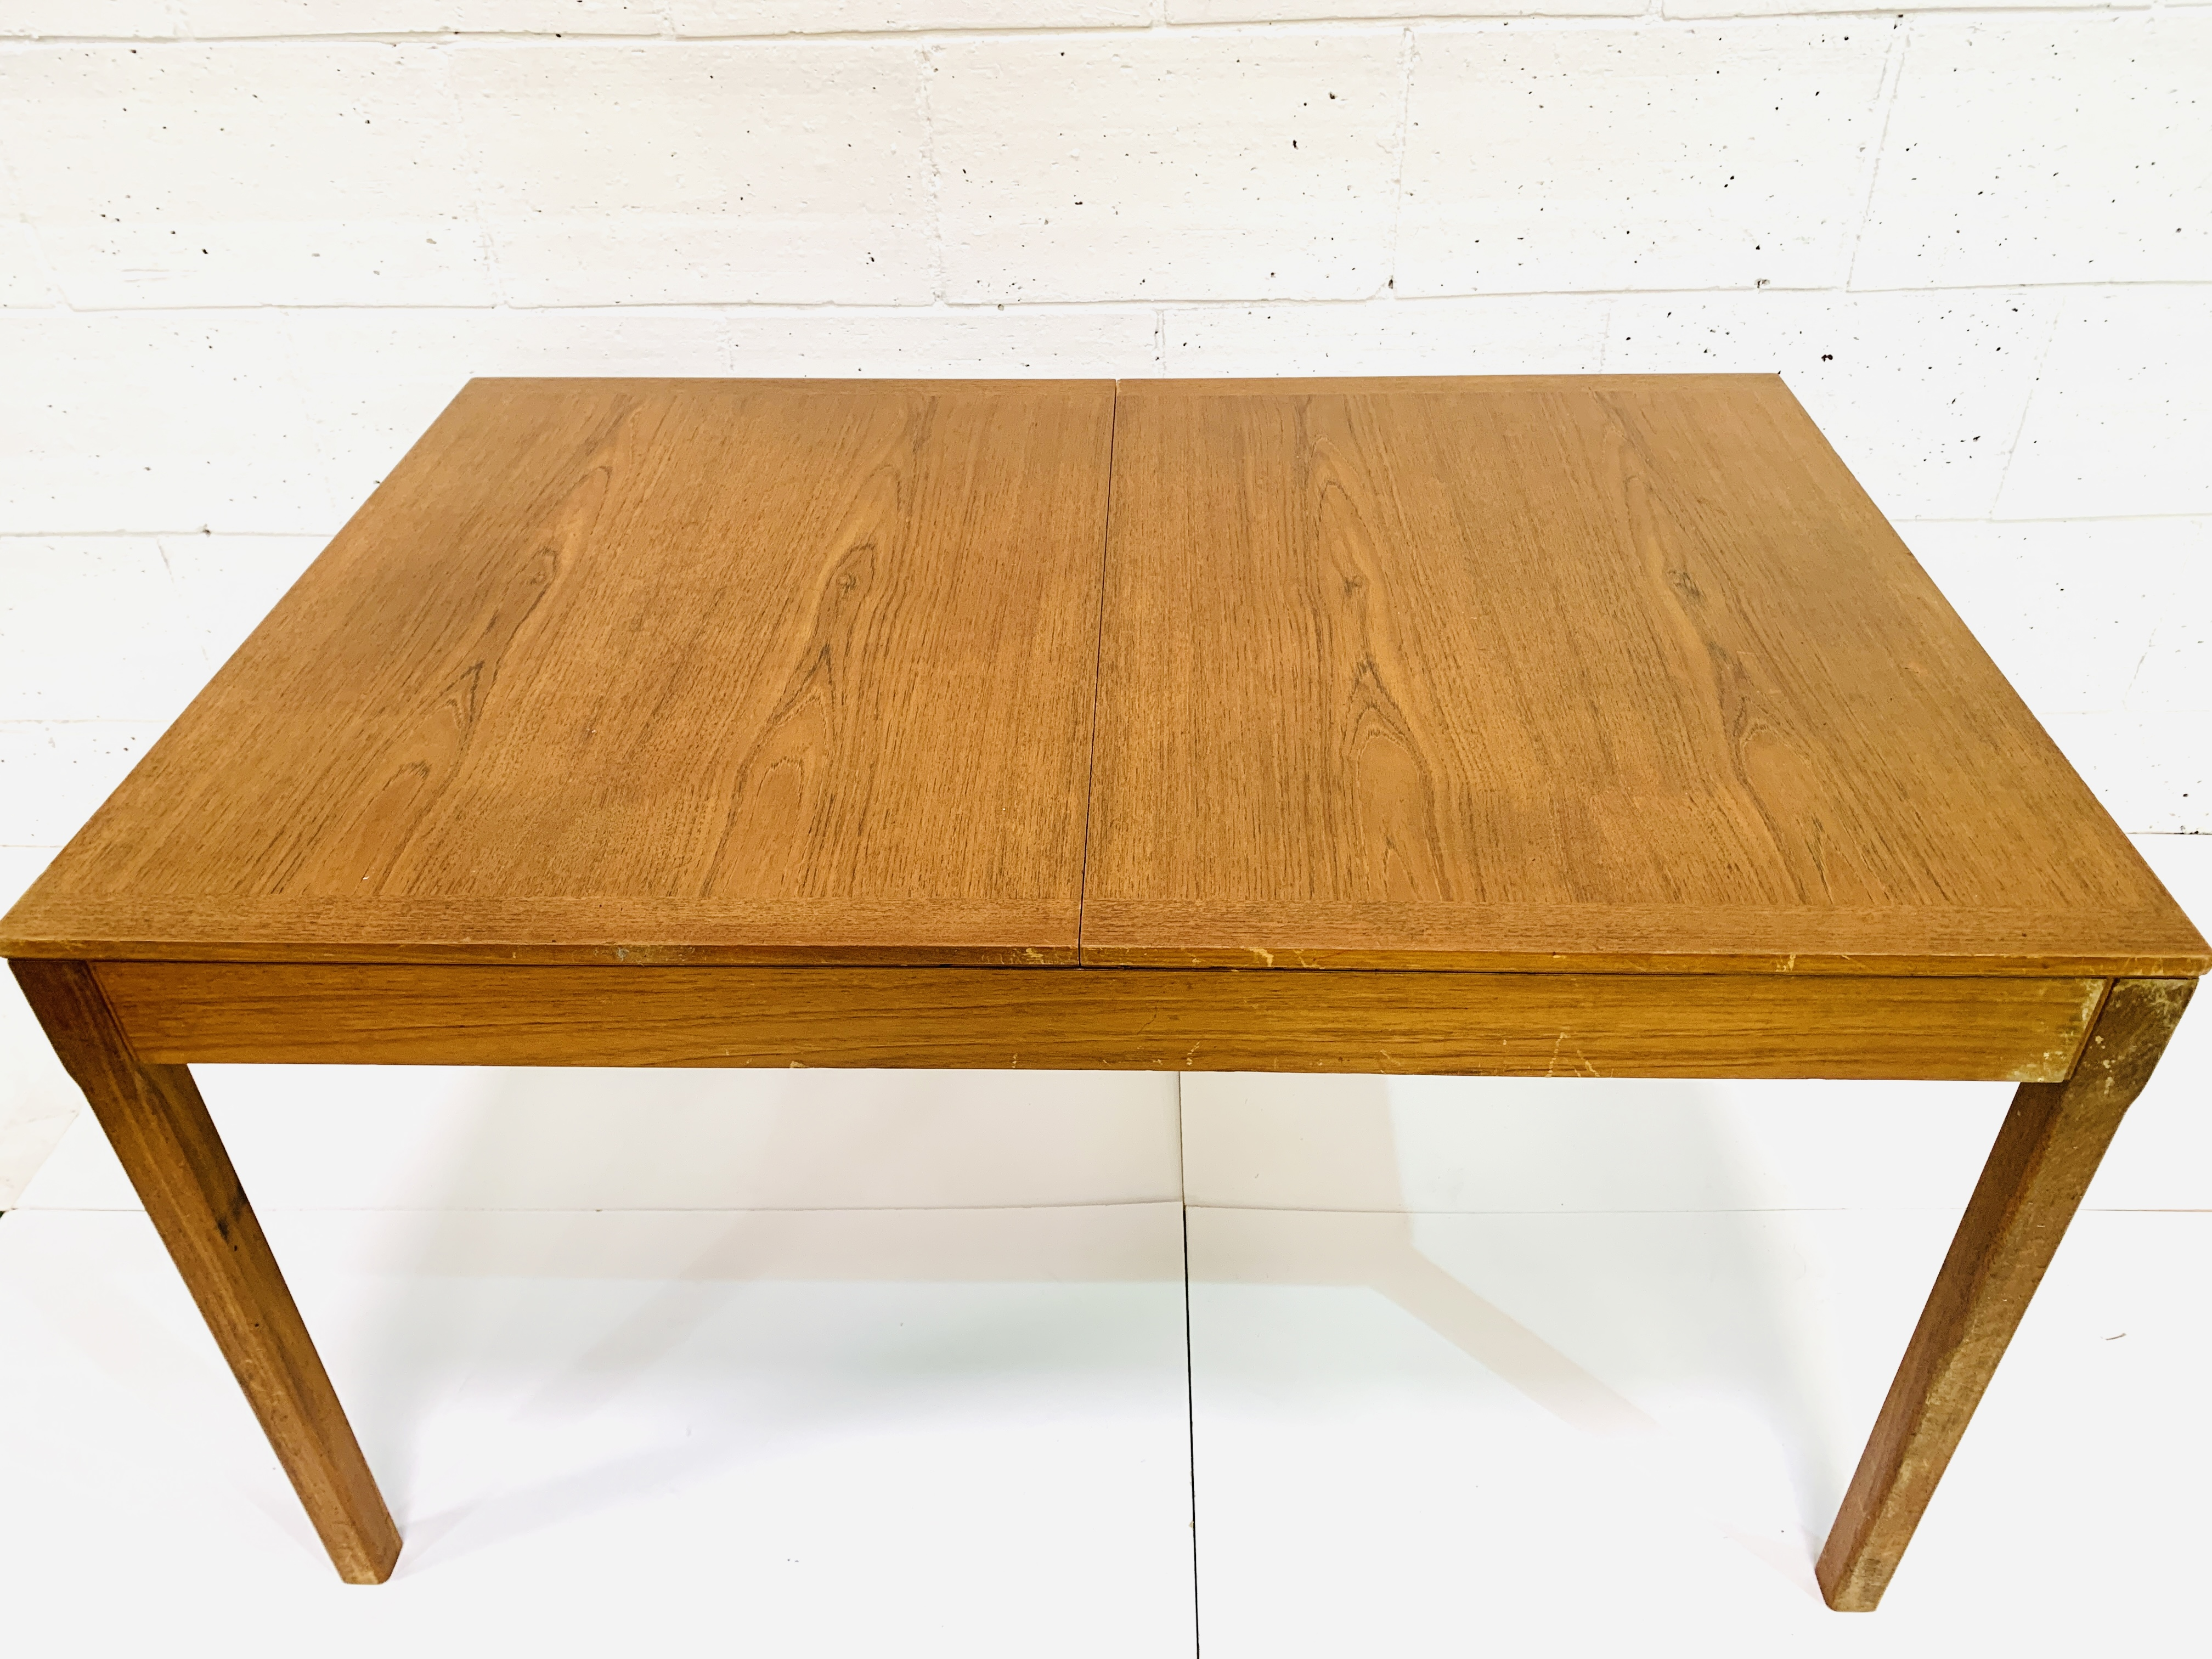 Teak extendable dining table - Image 2 of 4